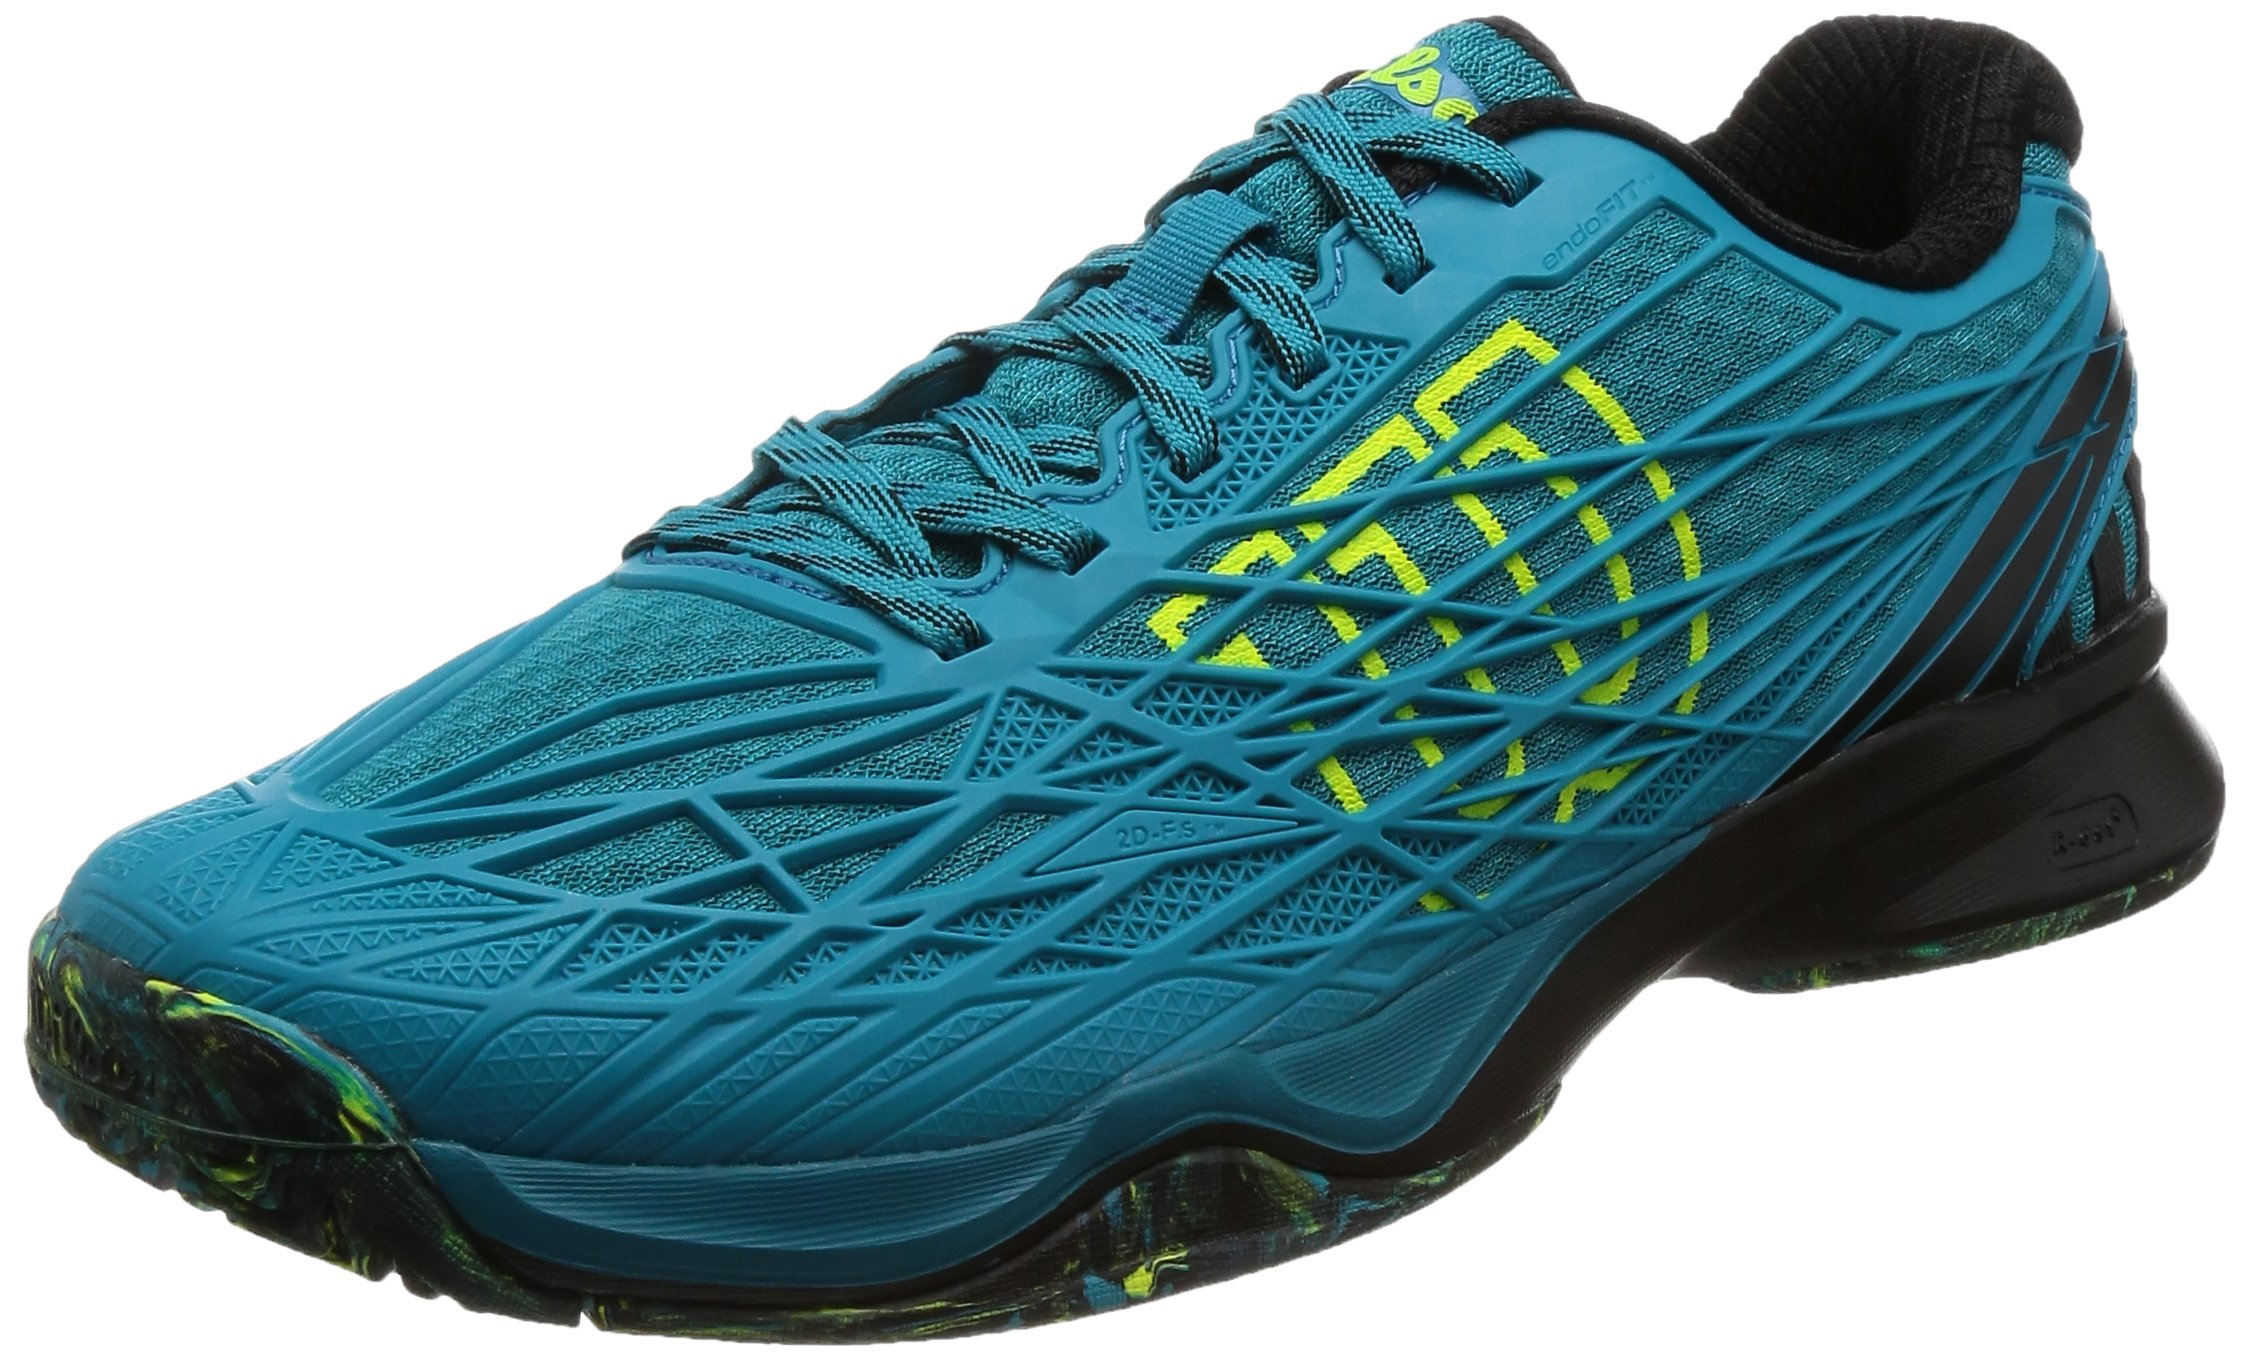 Wilson KAOS Men's All Court Tennis Shoe-9.5 D(M) US-Enamel Blue/Black/Safety Yellow